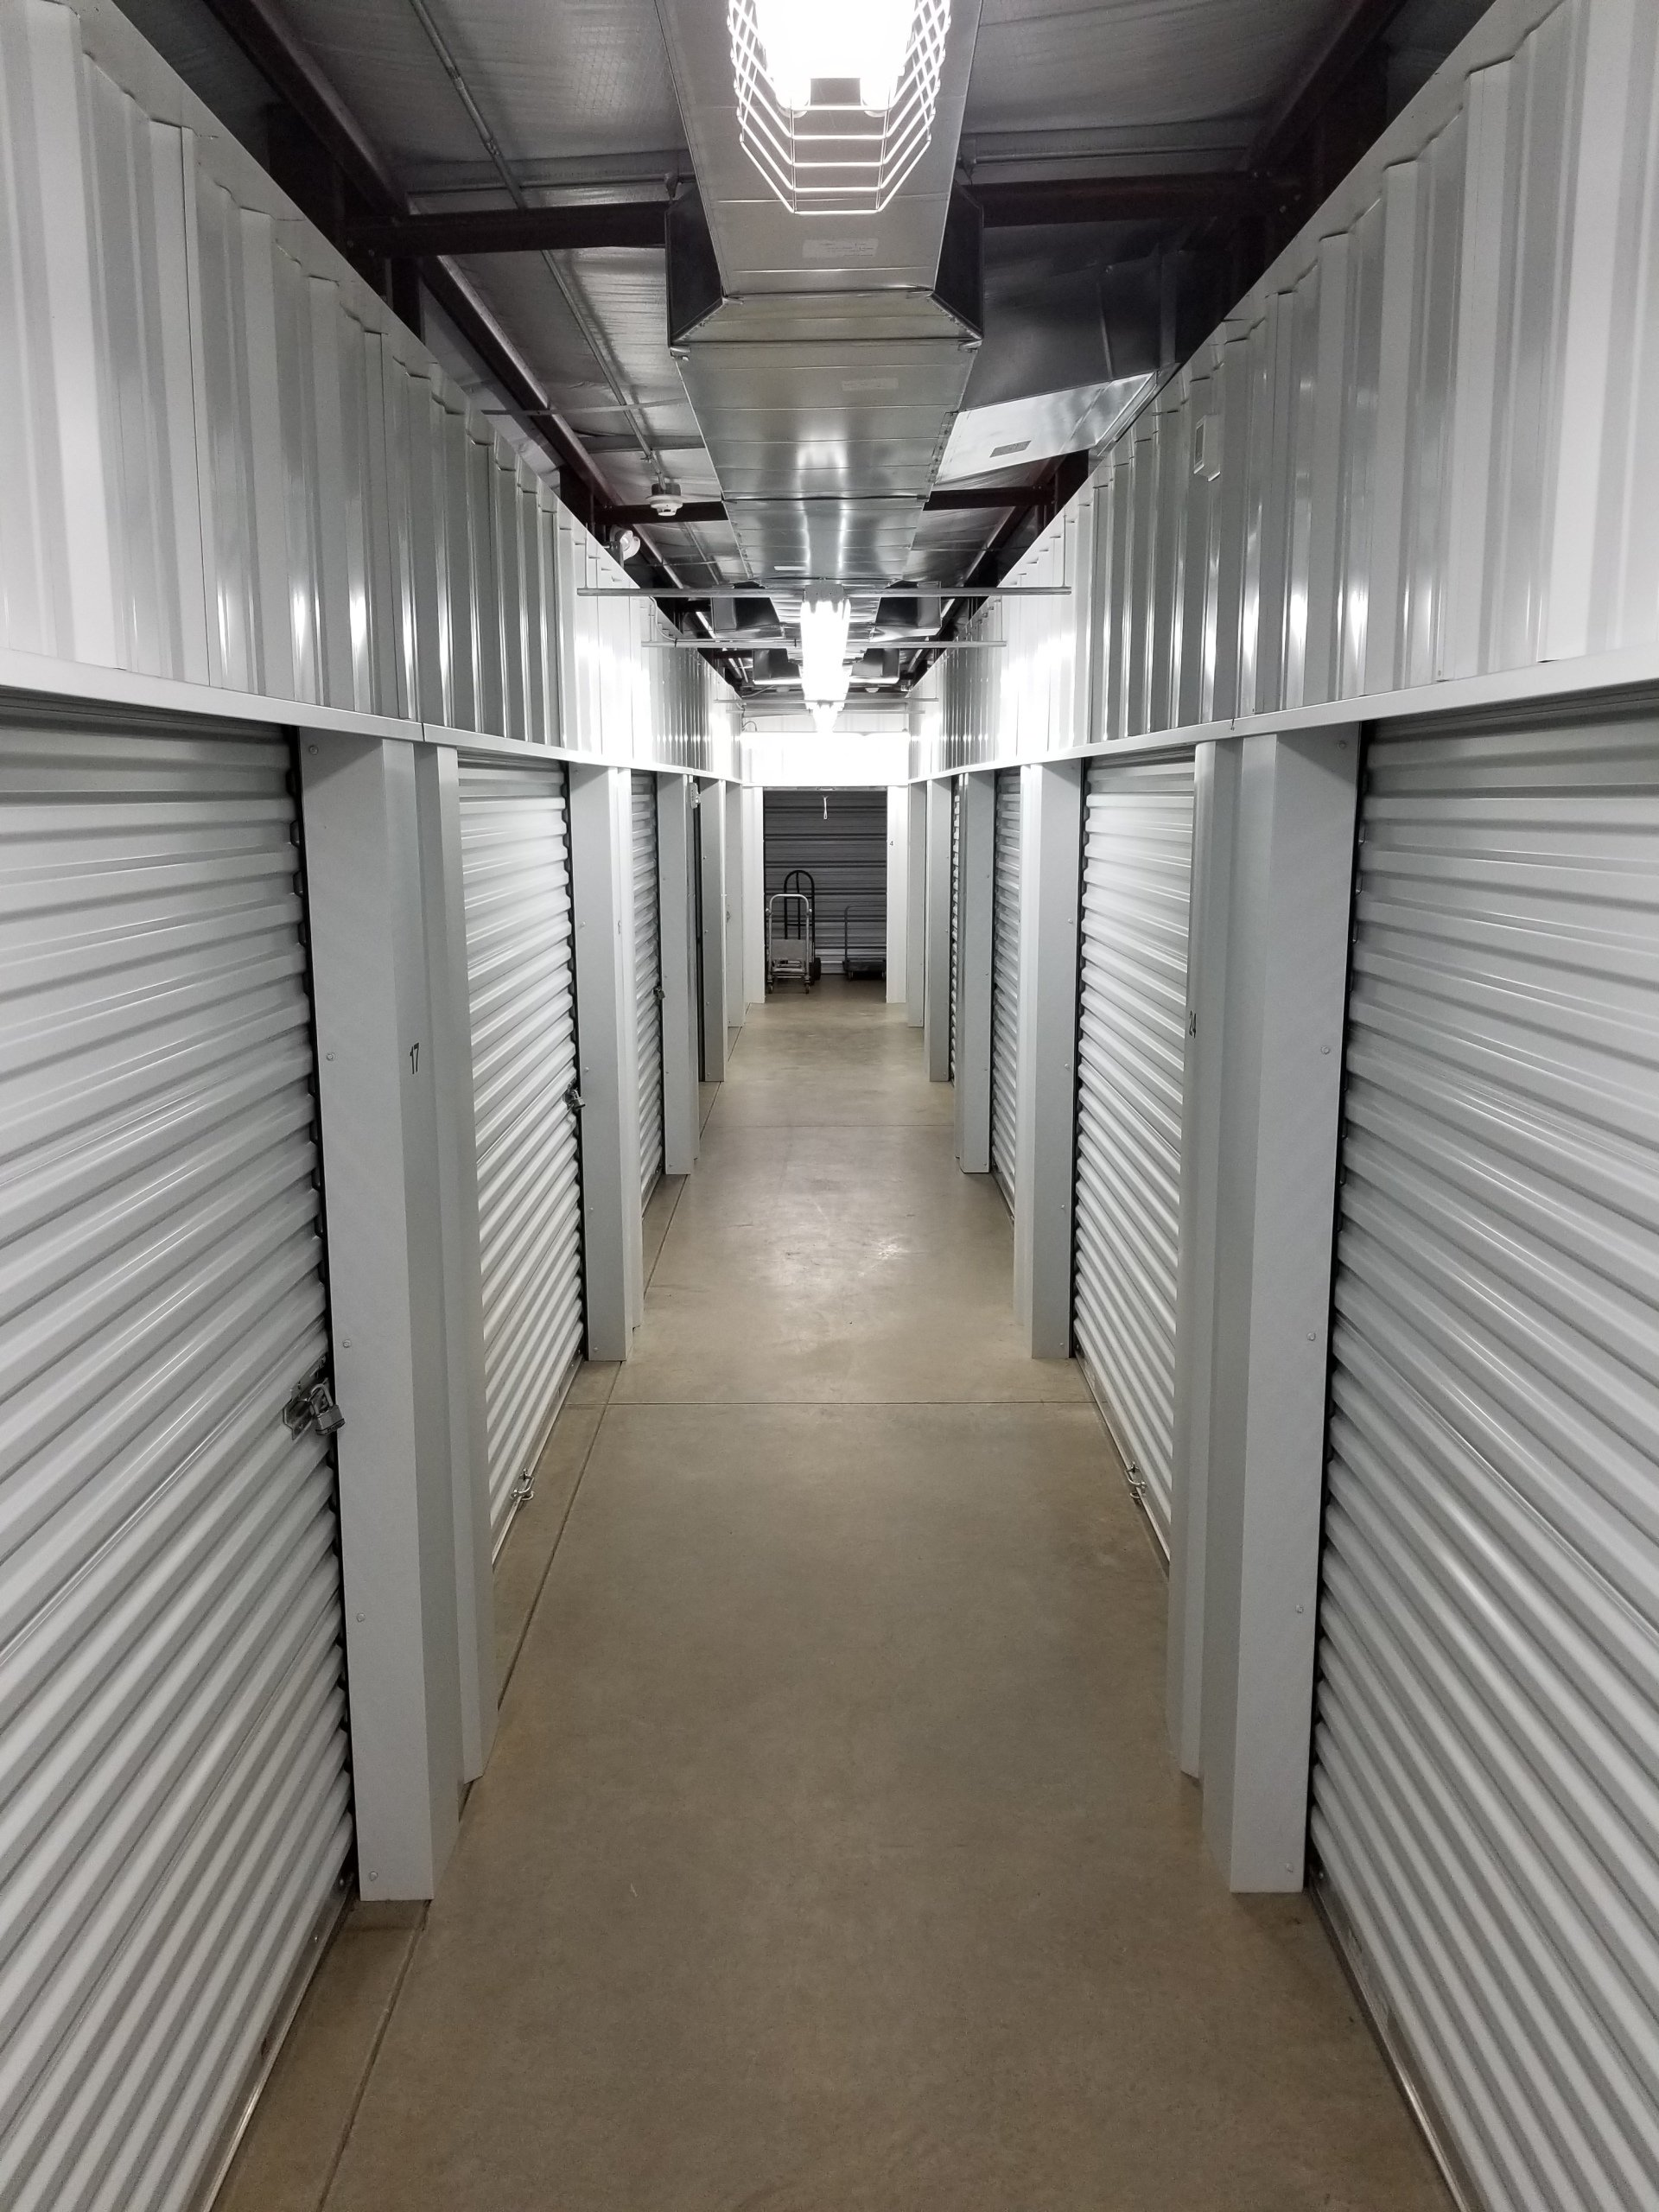 About 316 Self Storage Storage Units Winder Ga Rv Boat Parking